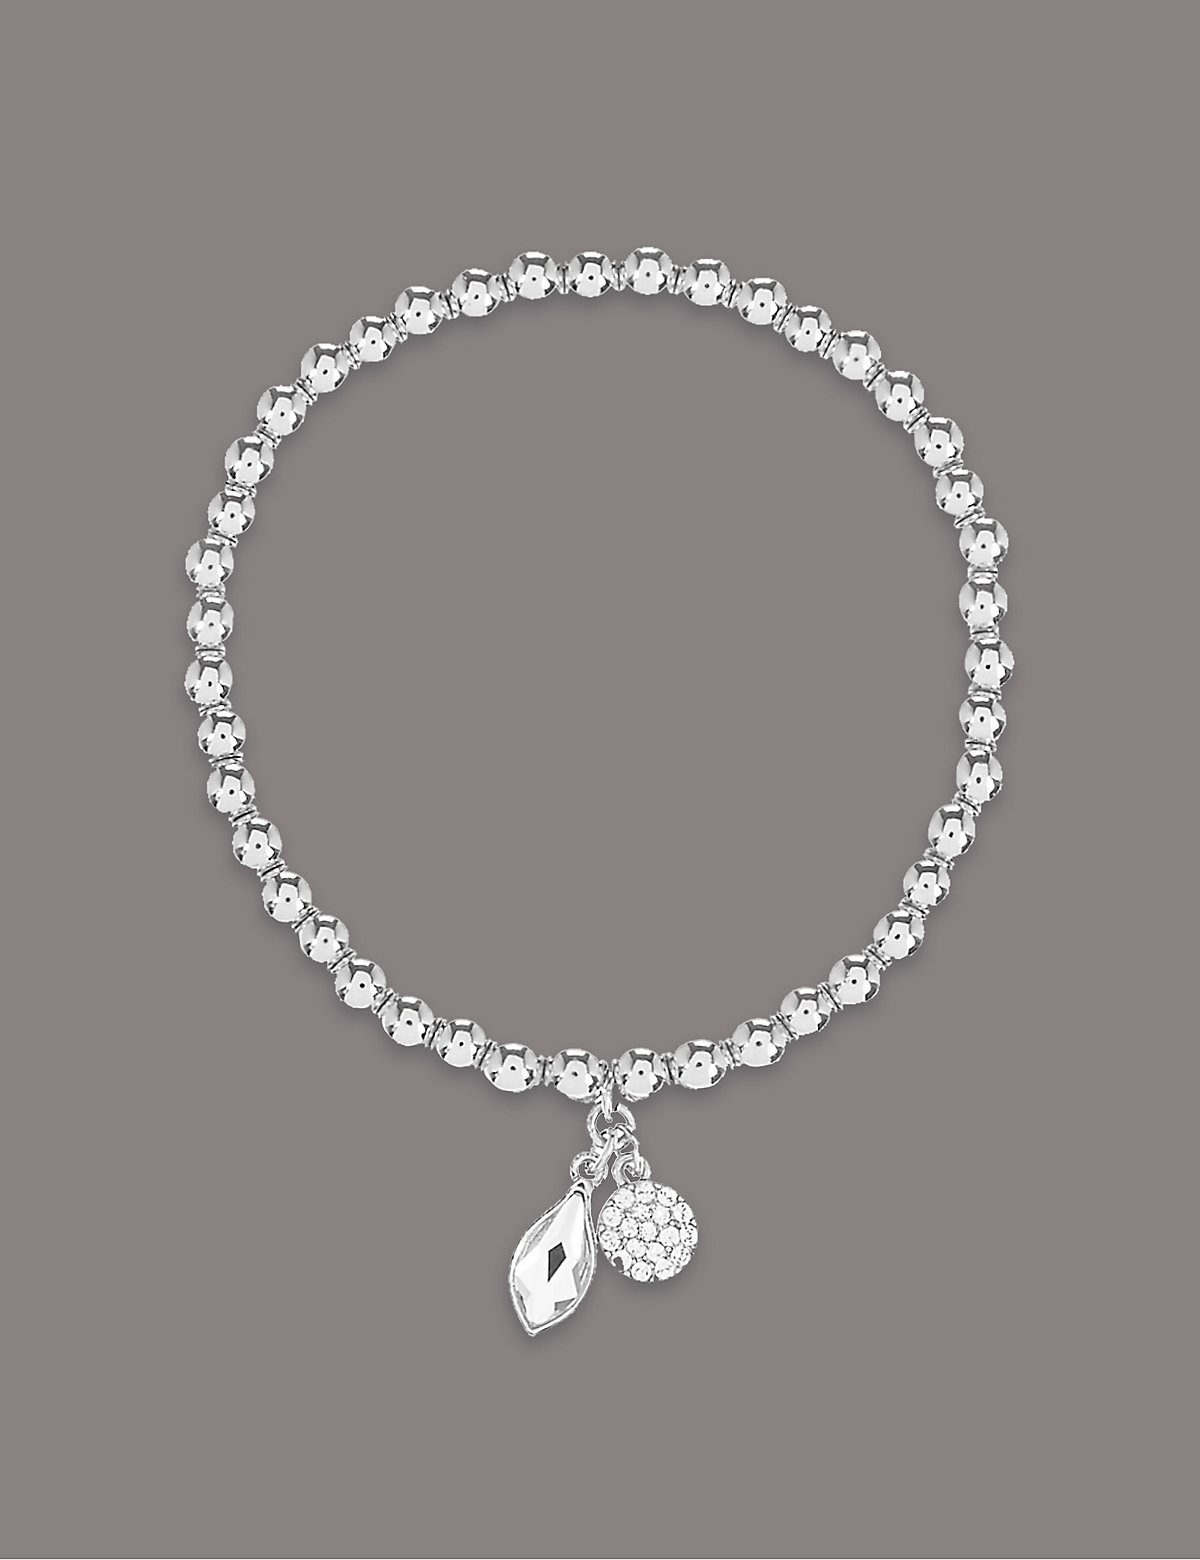 Autograph Double Drop Bracelet MADE WITH SWAROVSKI ELEMENTS